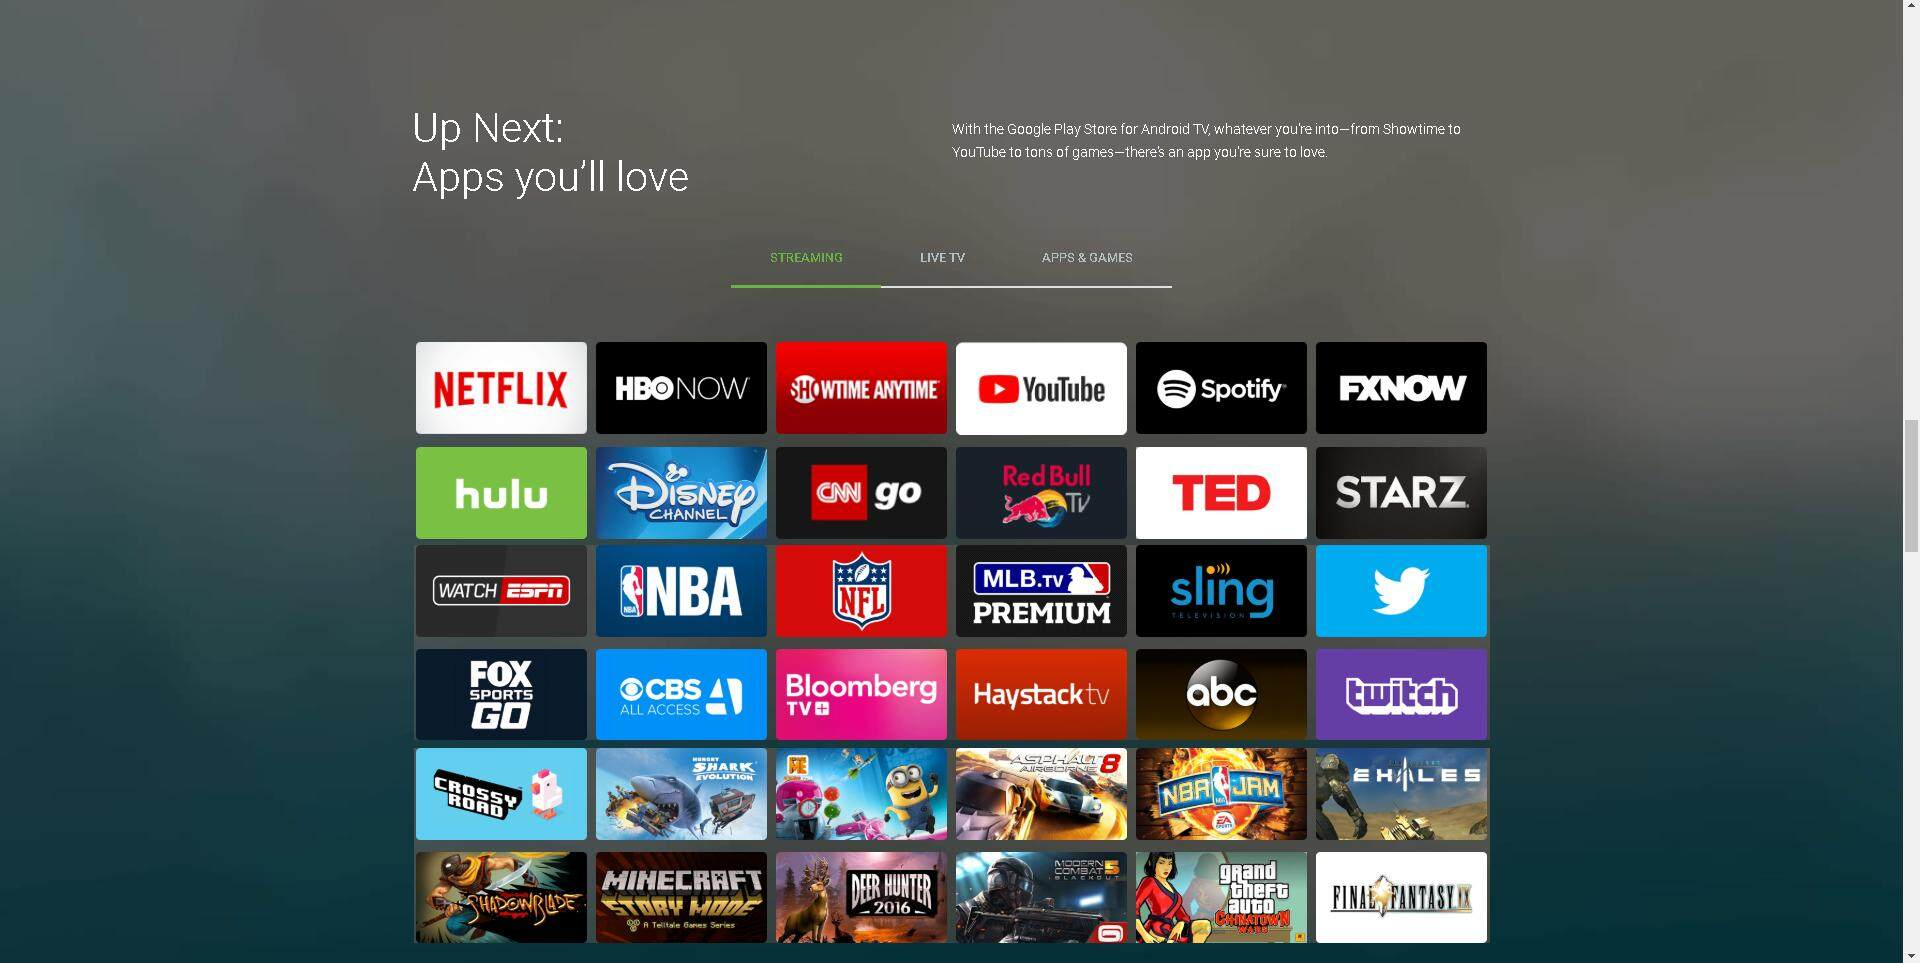 Android TV os // Google certified // Mi box S // mecool // Nvidia Shield //  Google cast chromecast Built-in // Voice search